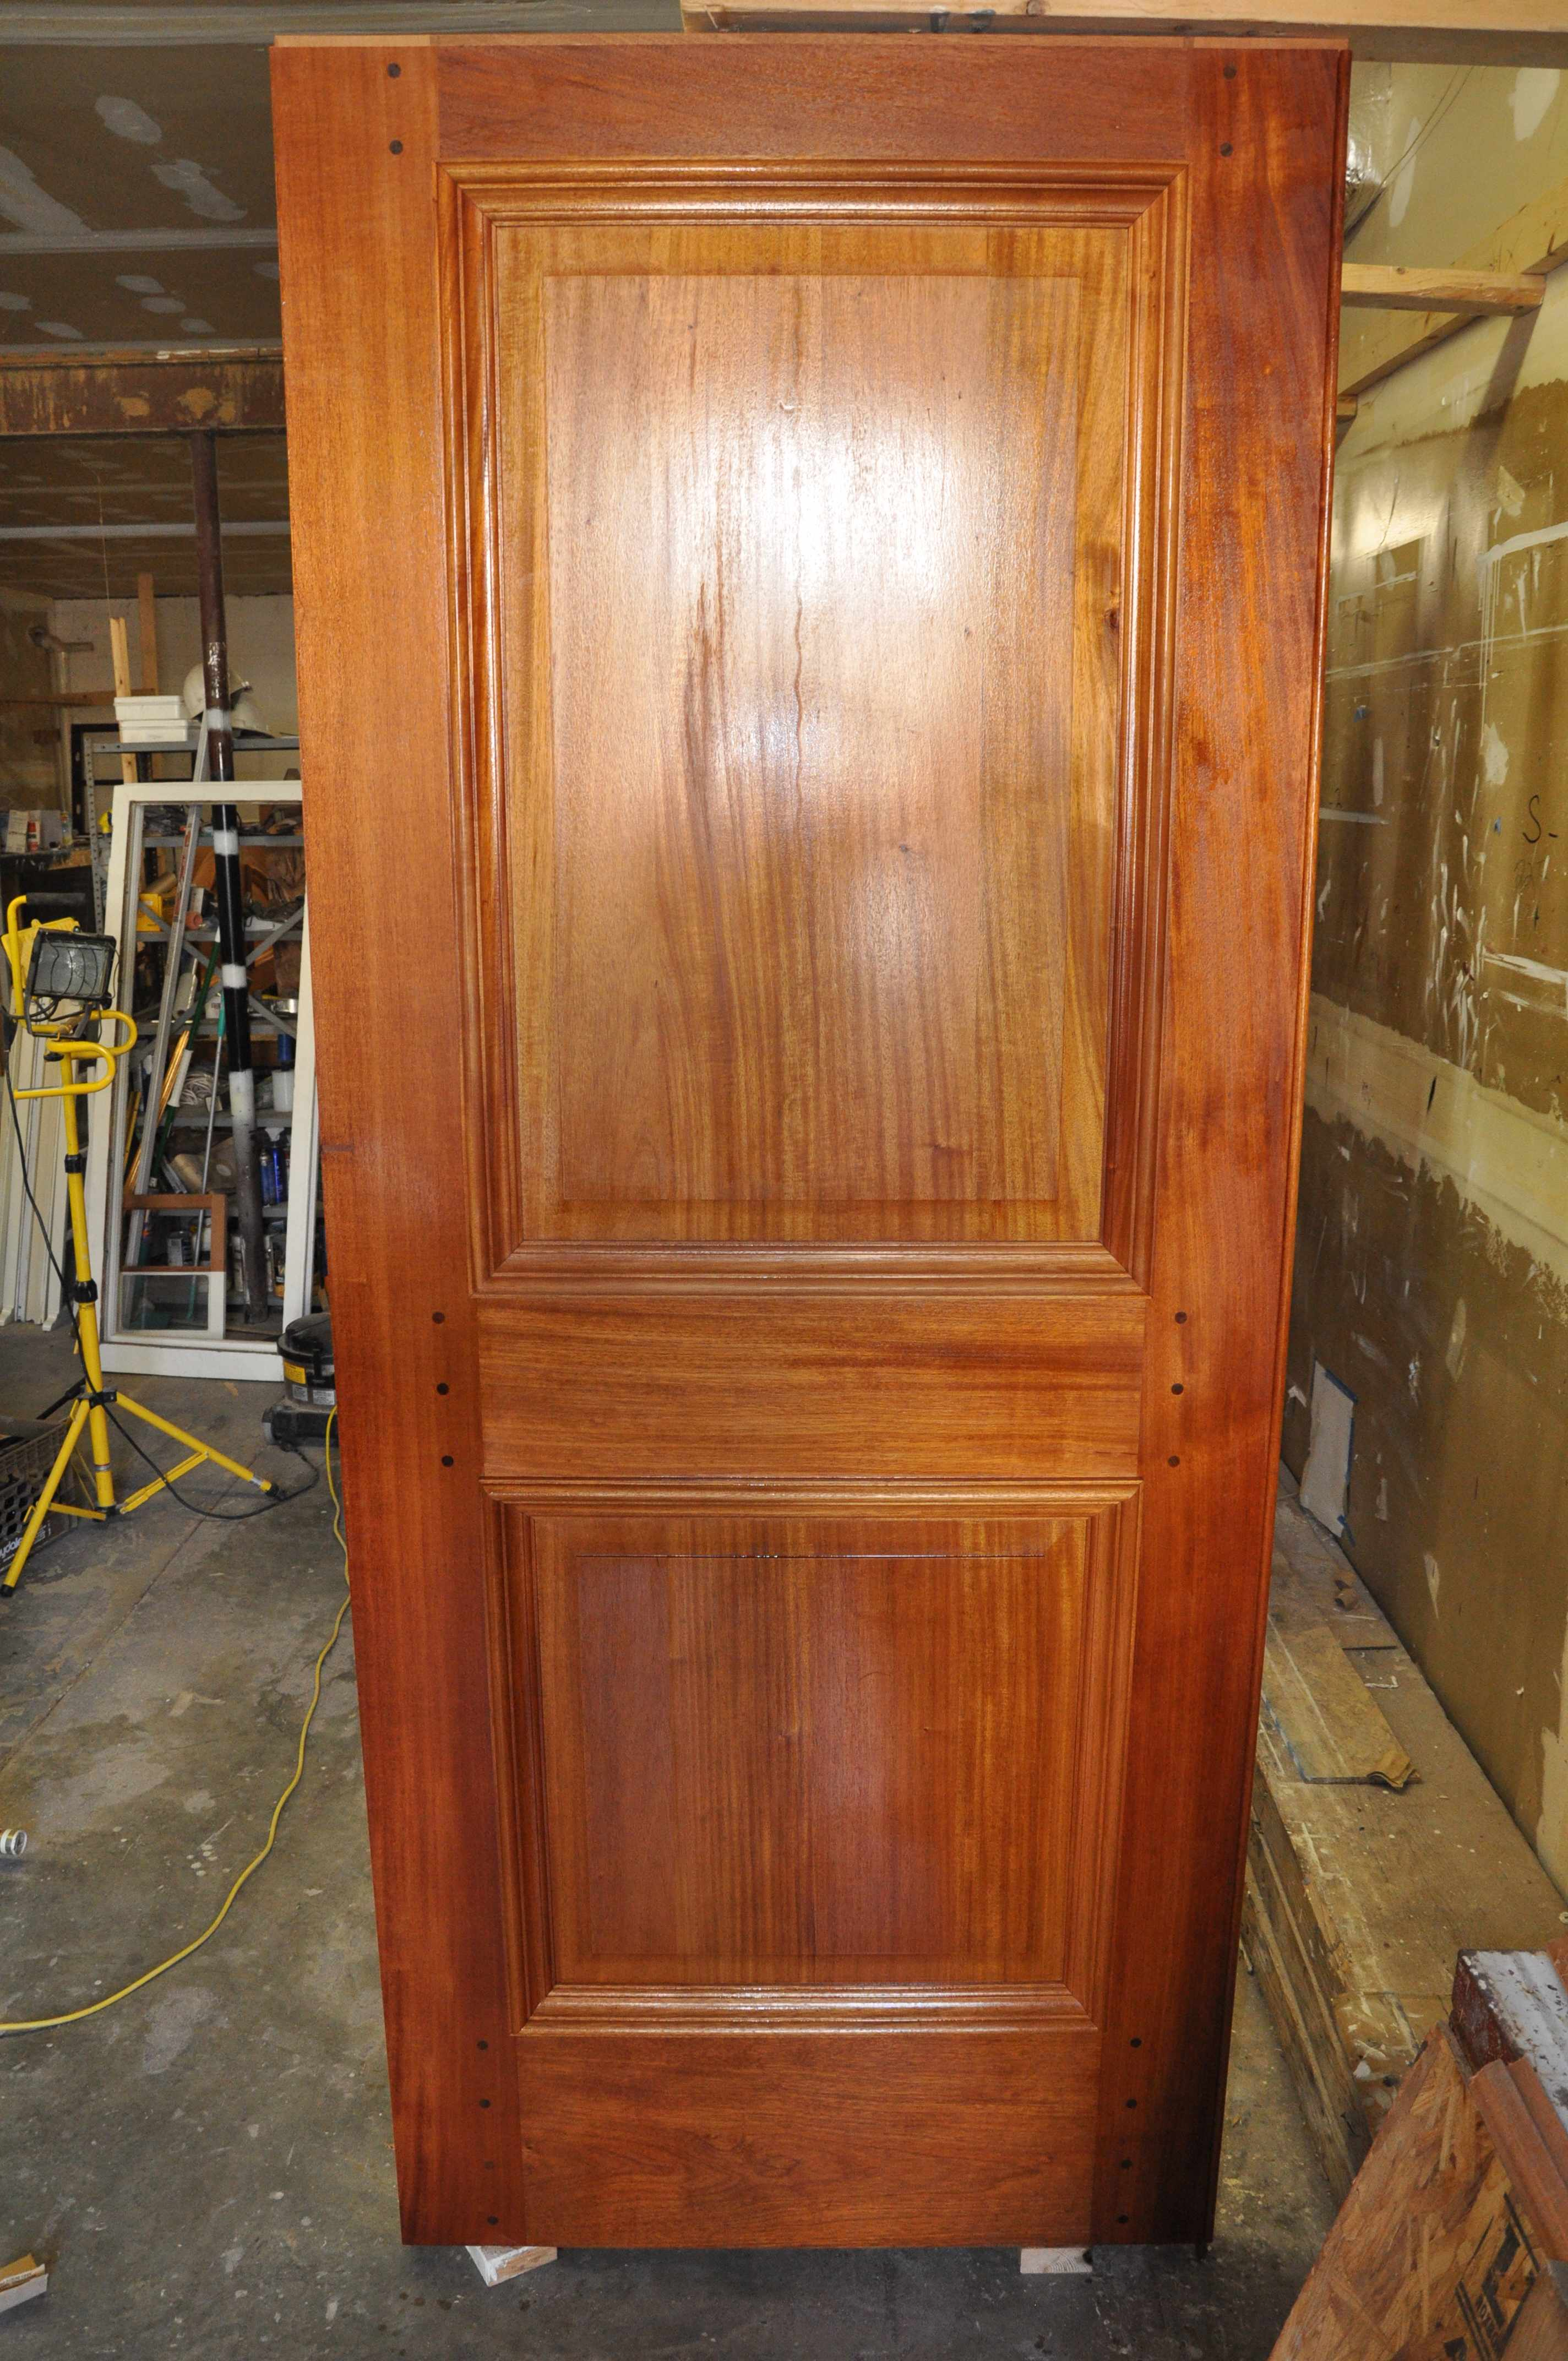 Here are photos of the mahogany doors that are now installed at the DC Superior Court buildings. After filling any imperfections and multiple coats of ... & Mahogany Doors \u2013 DC Superior Court Buildings | renew restoration inc.